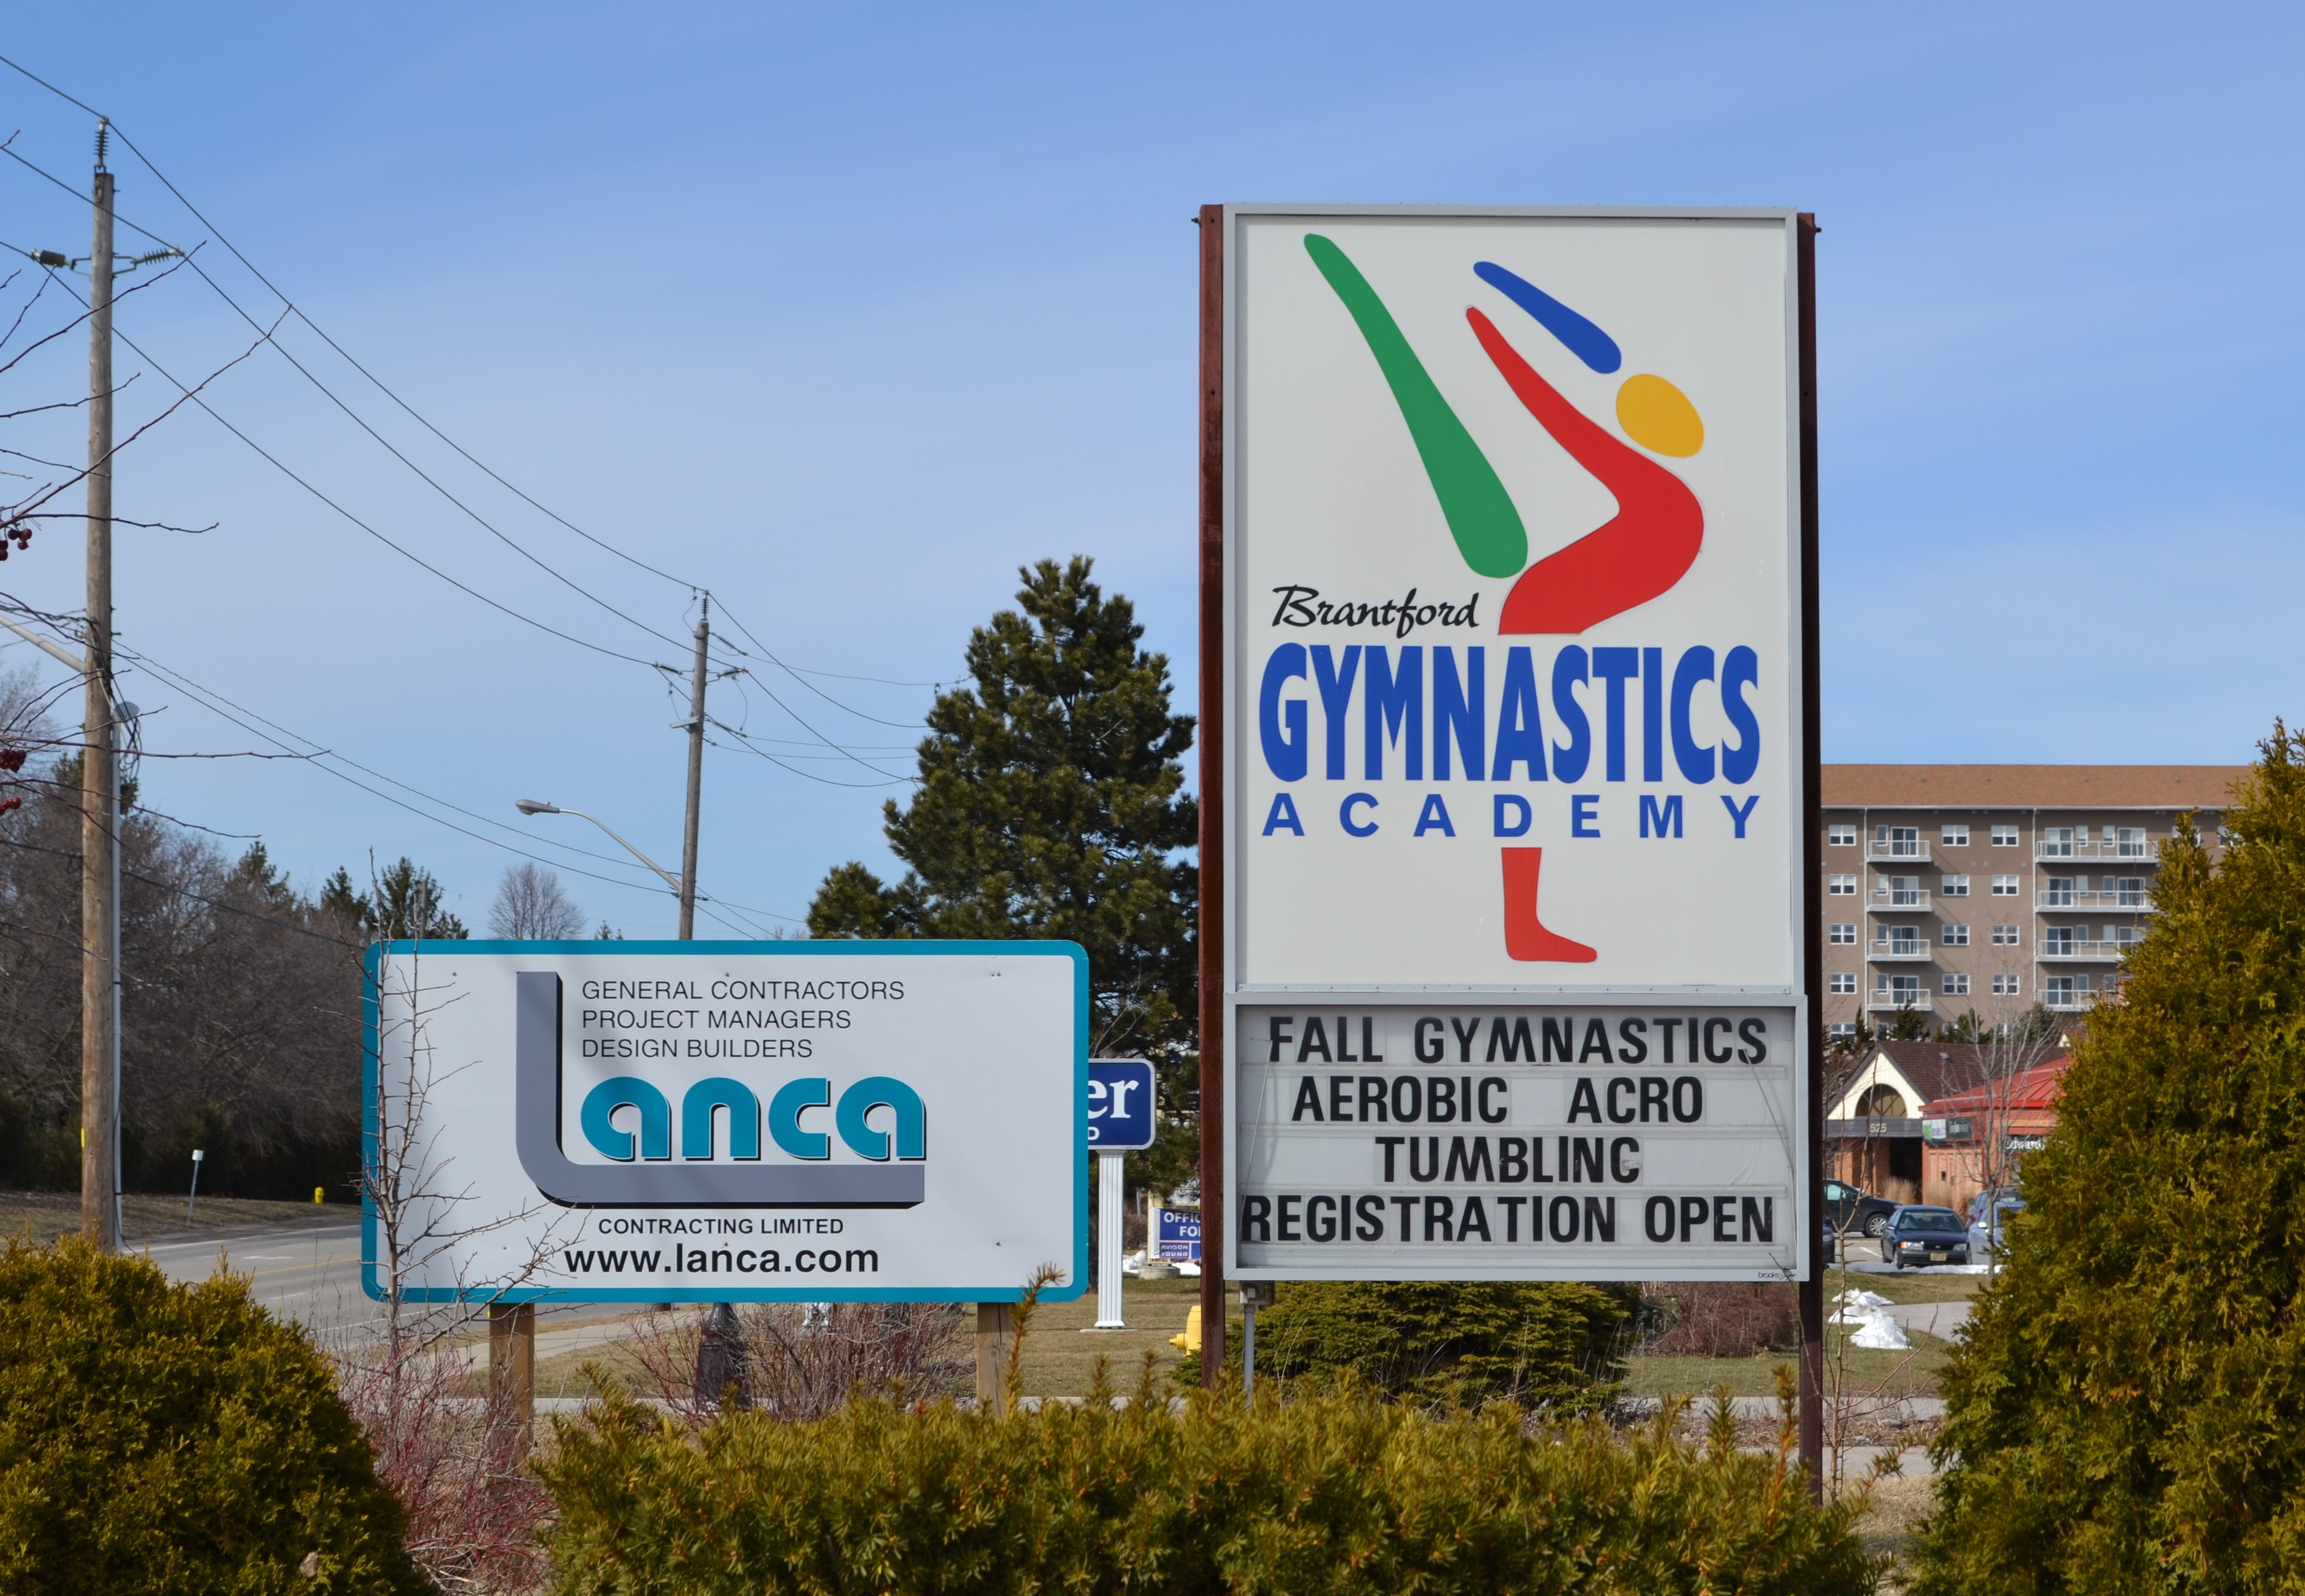 Brantford Gymnastics Academy – New Building